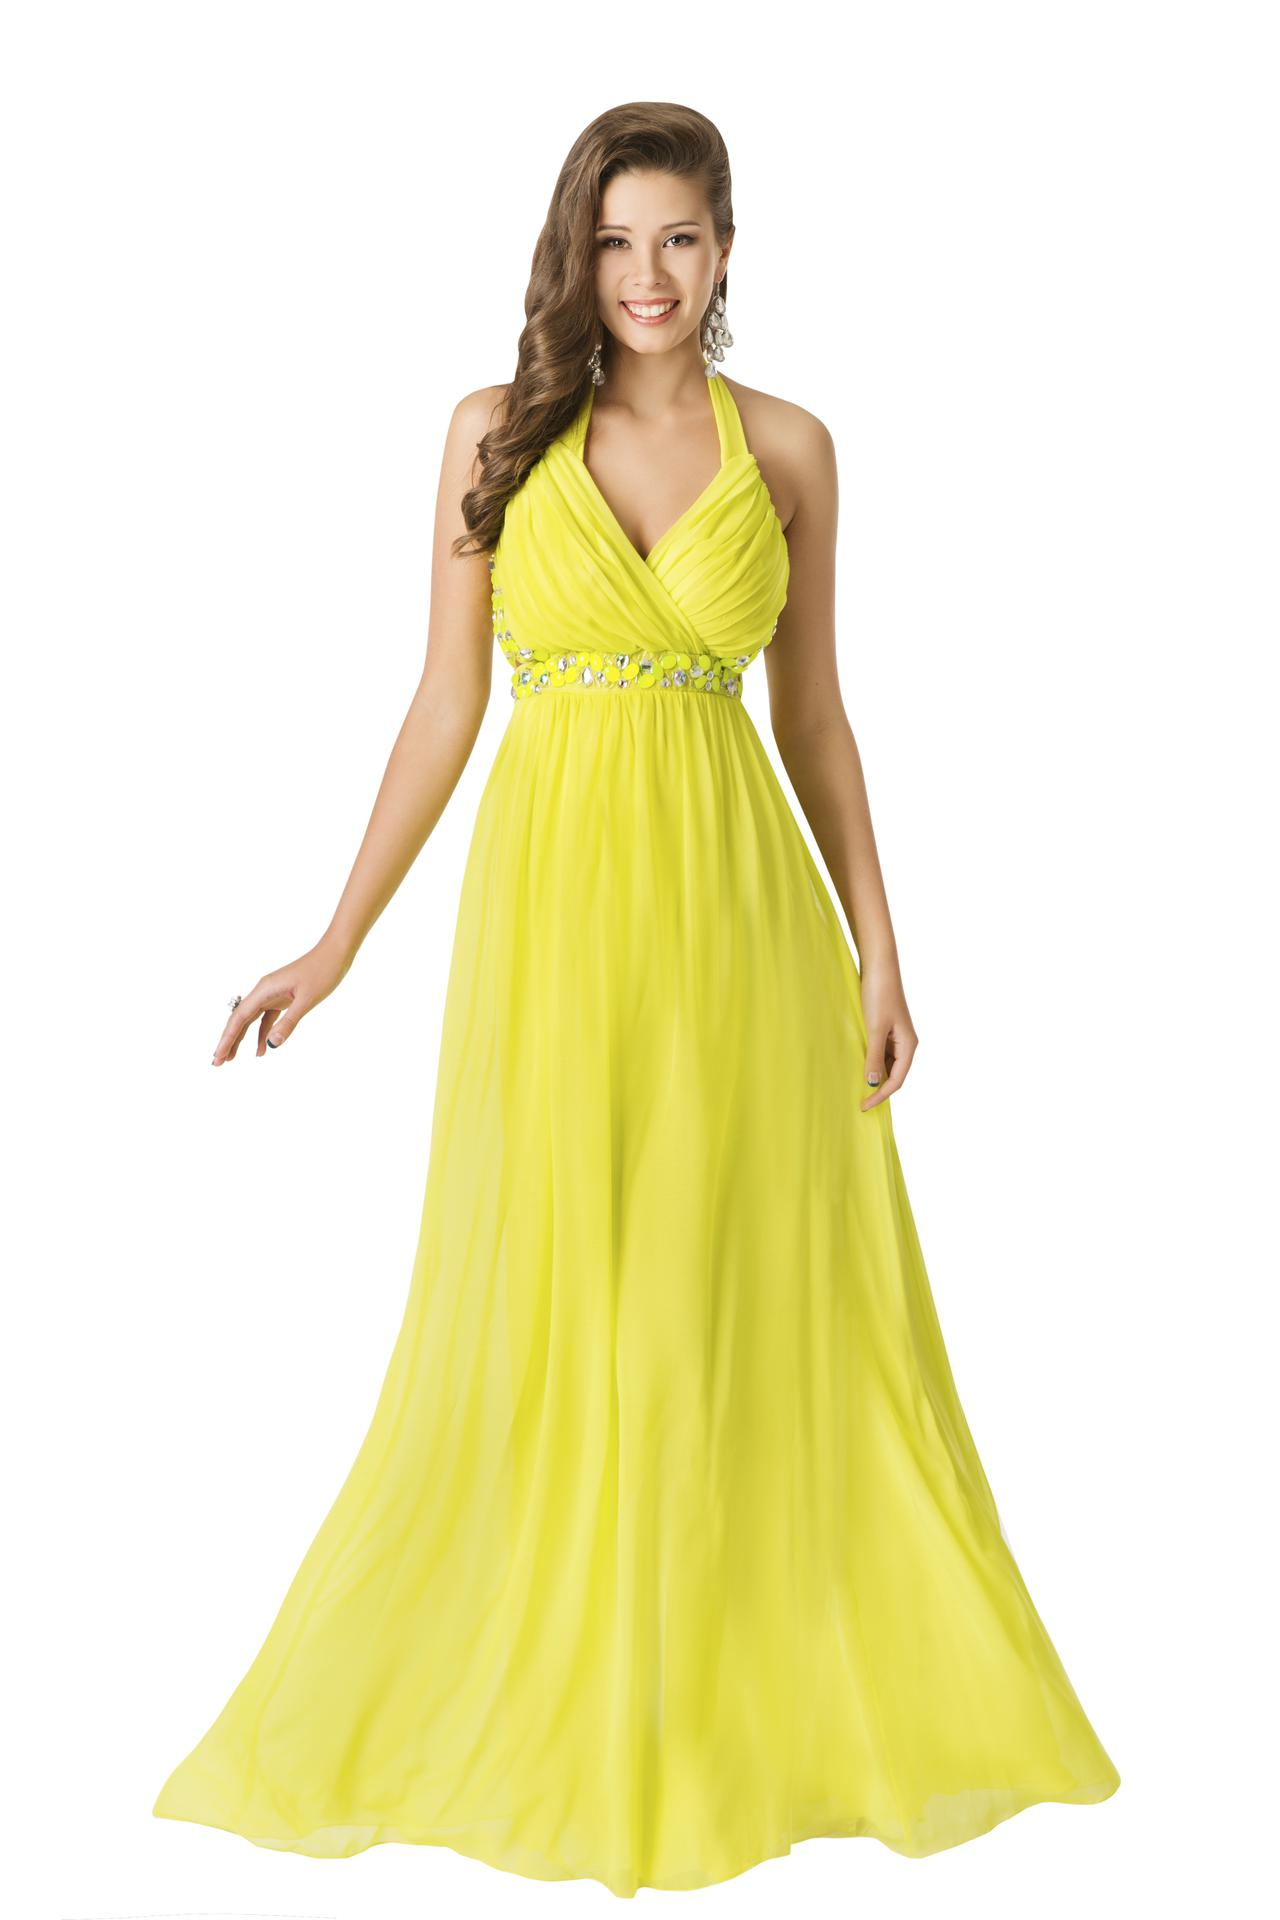 What To Wear To An Evening Wedding Evening Wedding Dress Code DressCodeable